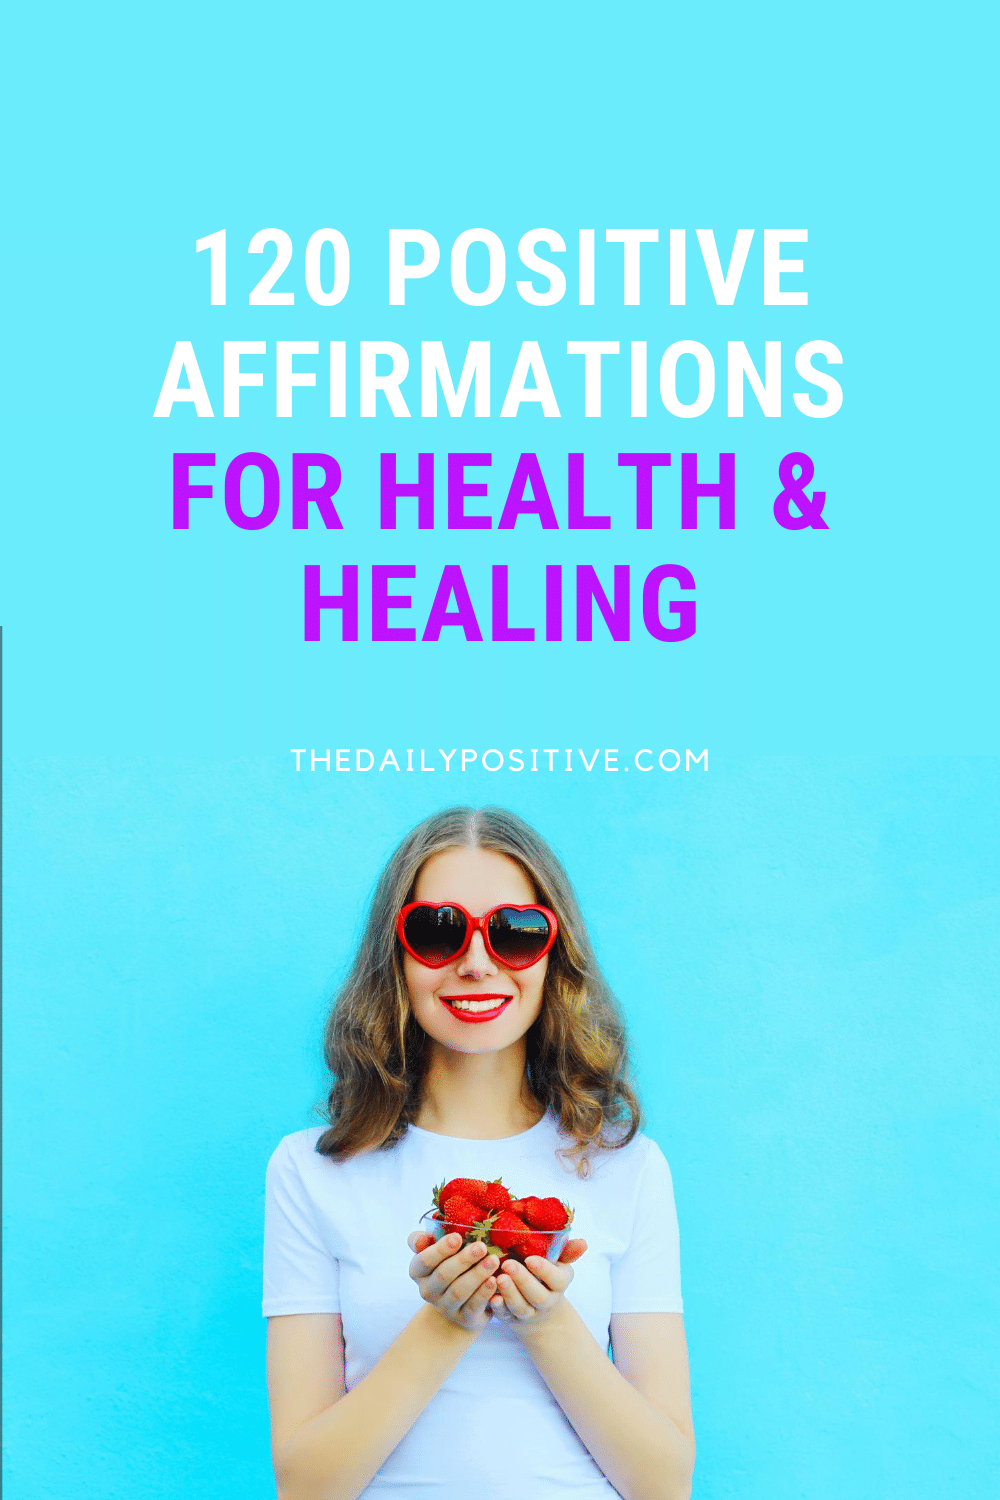 120 Positive Affirmations for Health & Healing